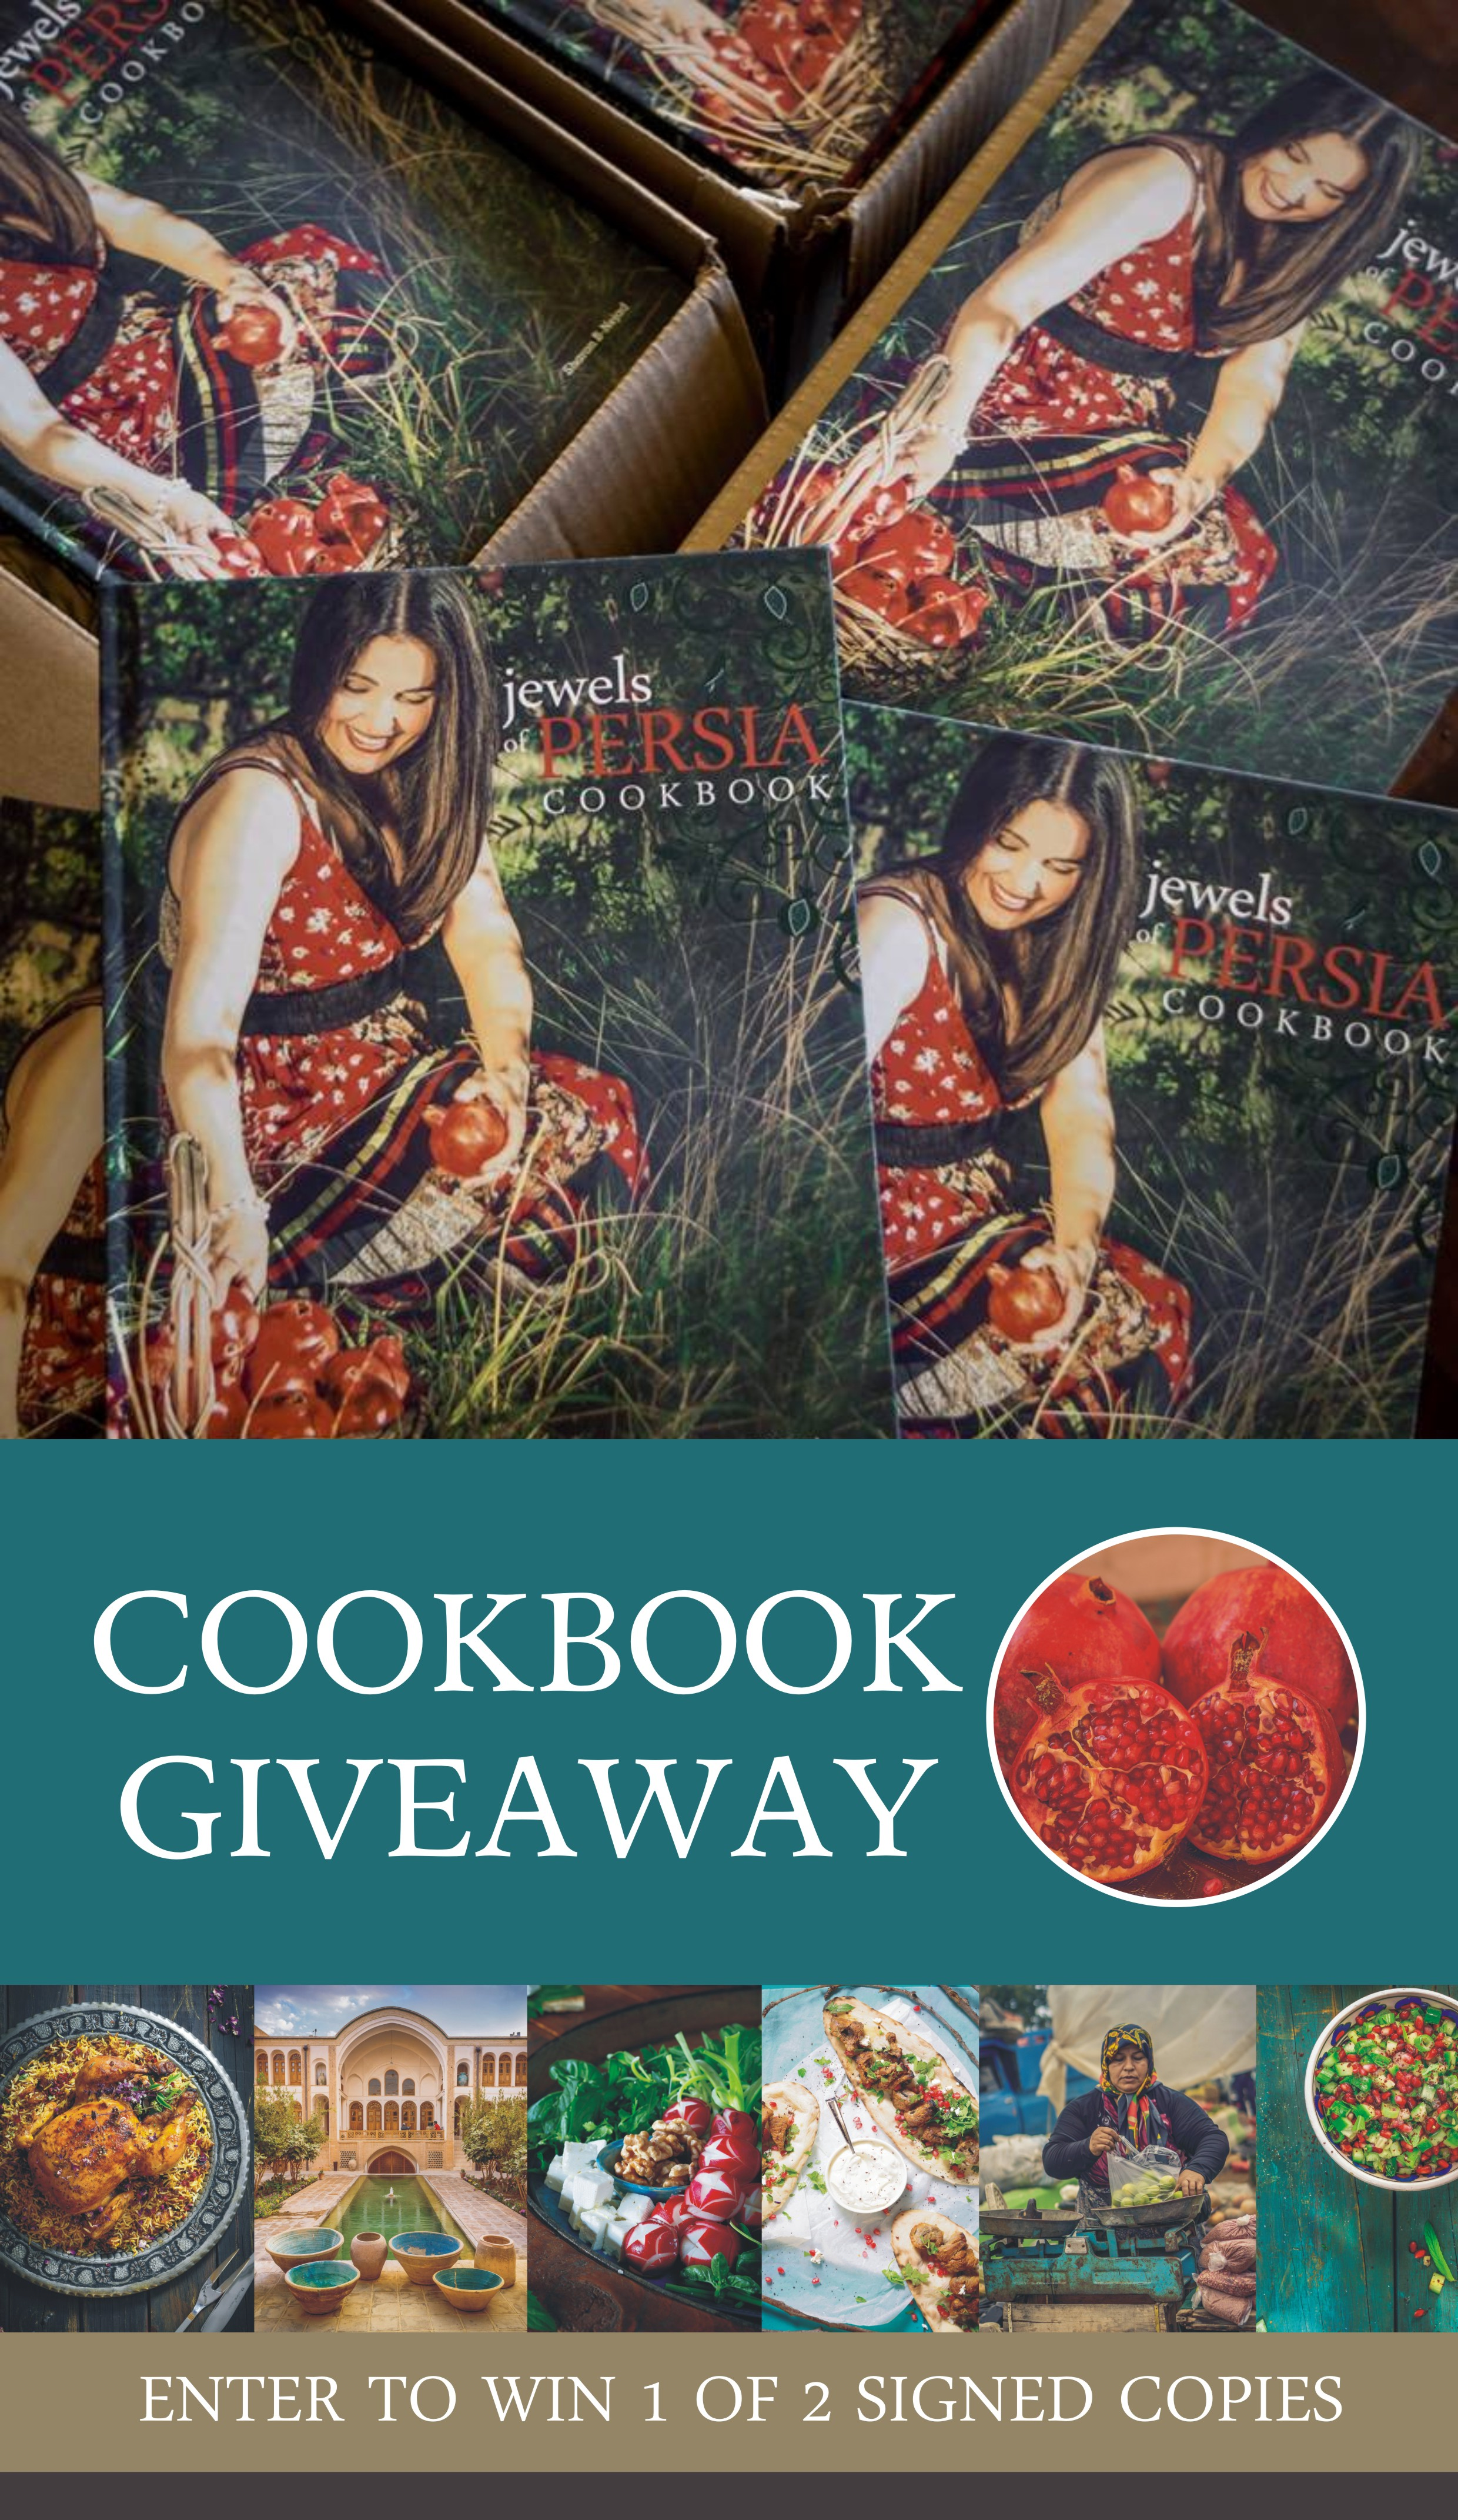 ENTER TO WIN 1 OF 2 SIGNED COOKBOOKS